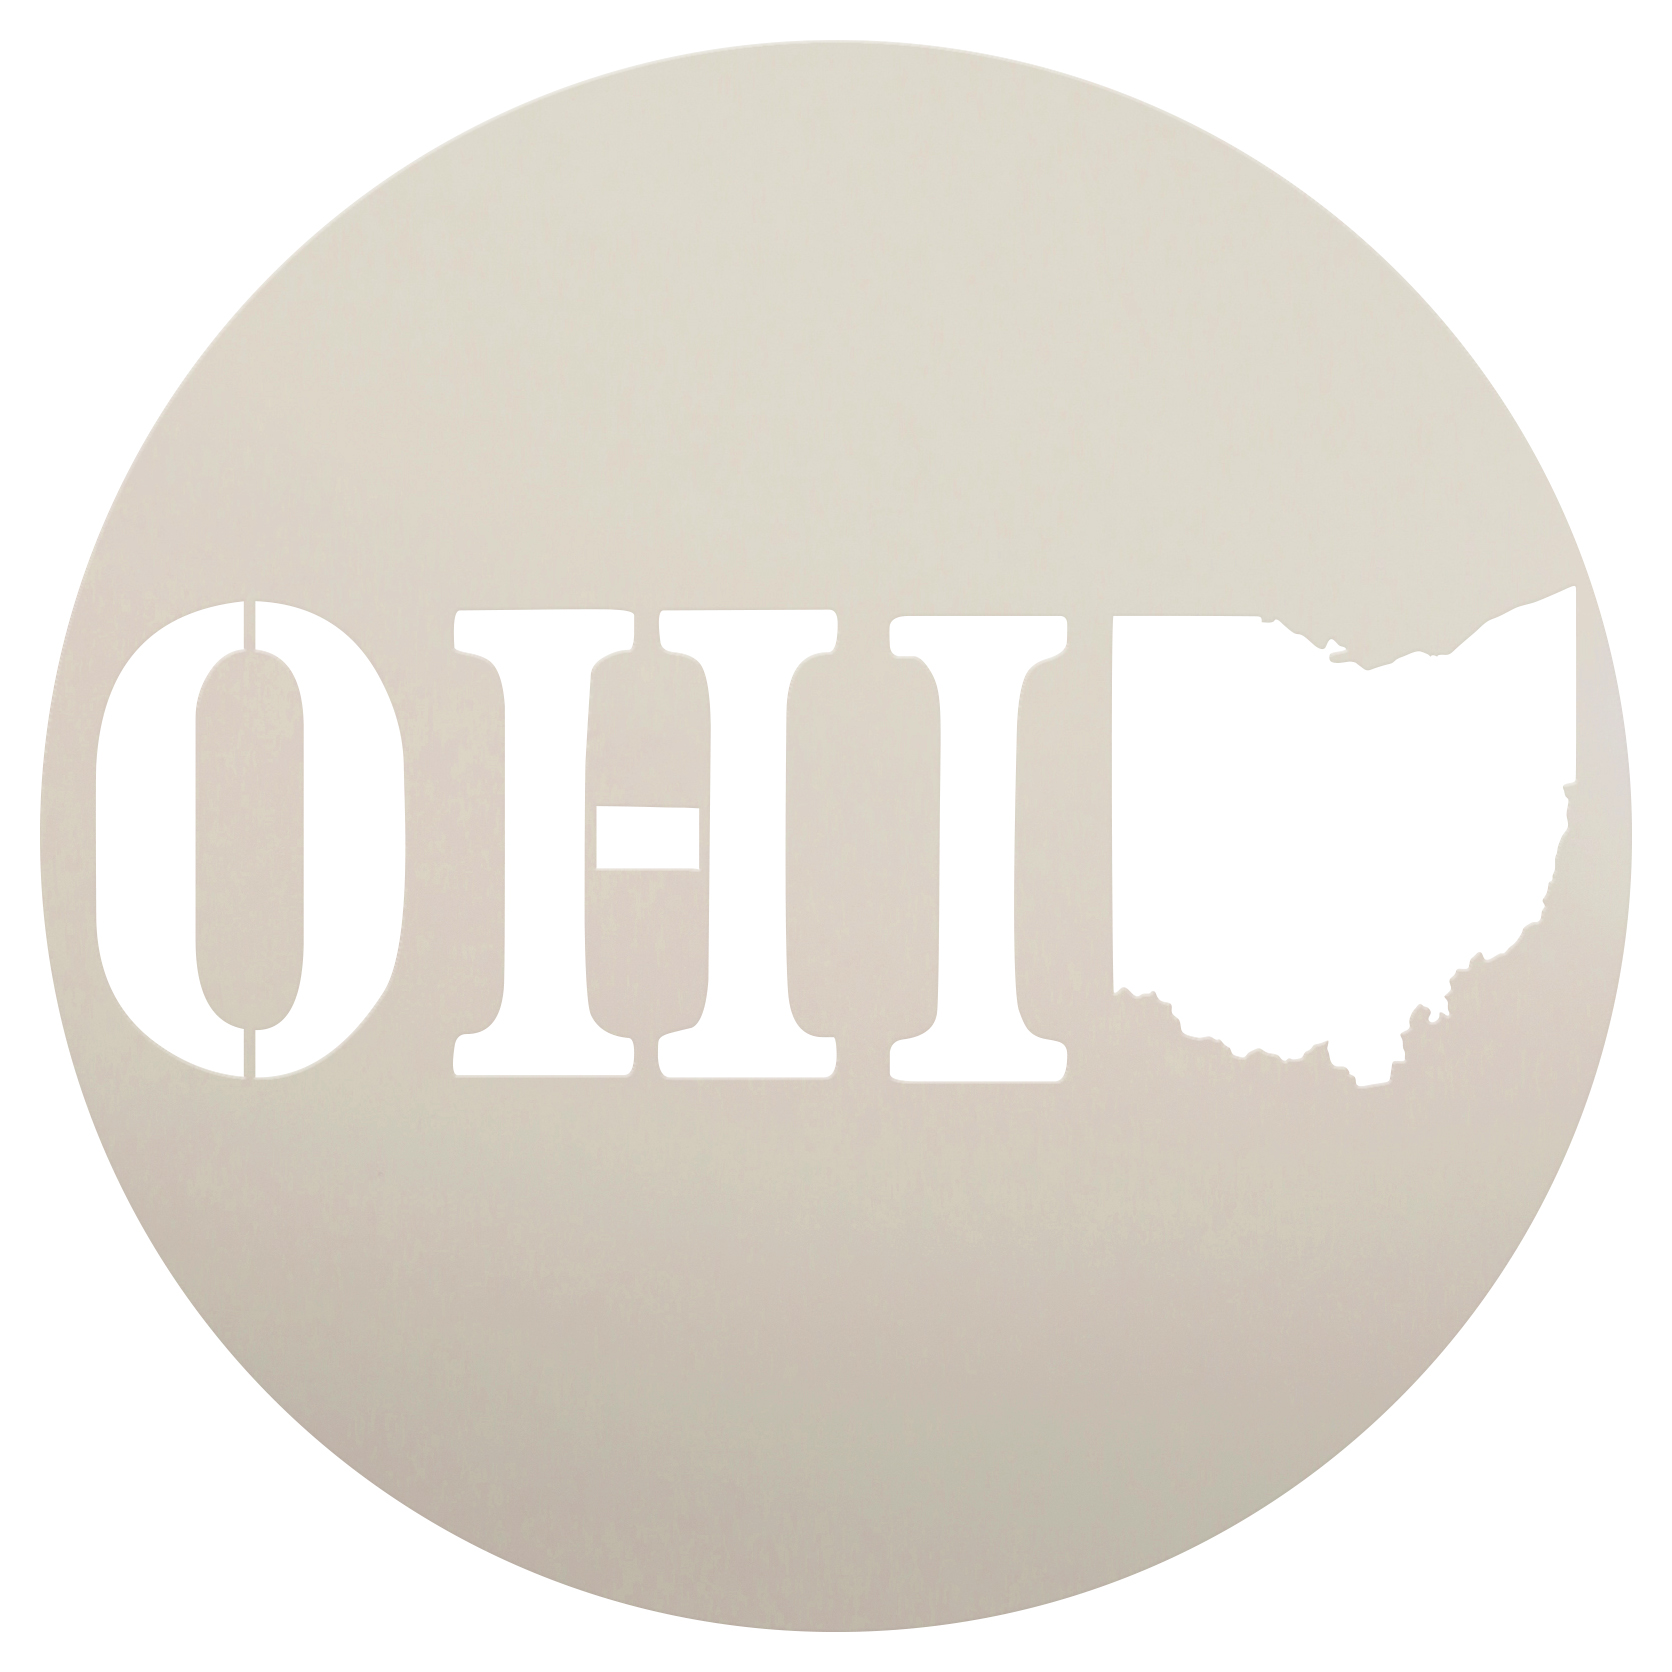 "State of Ohio Stencil |  by StudioR12 | Reusable Mylar Template | 14"" Round 